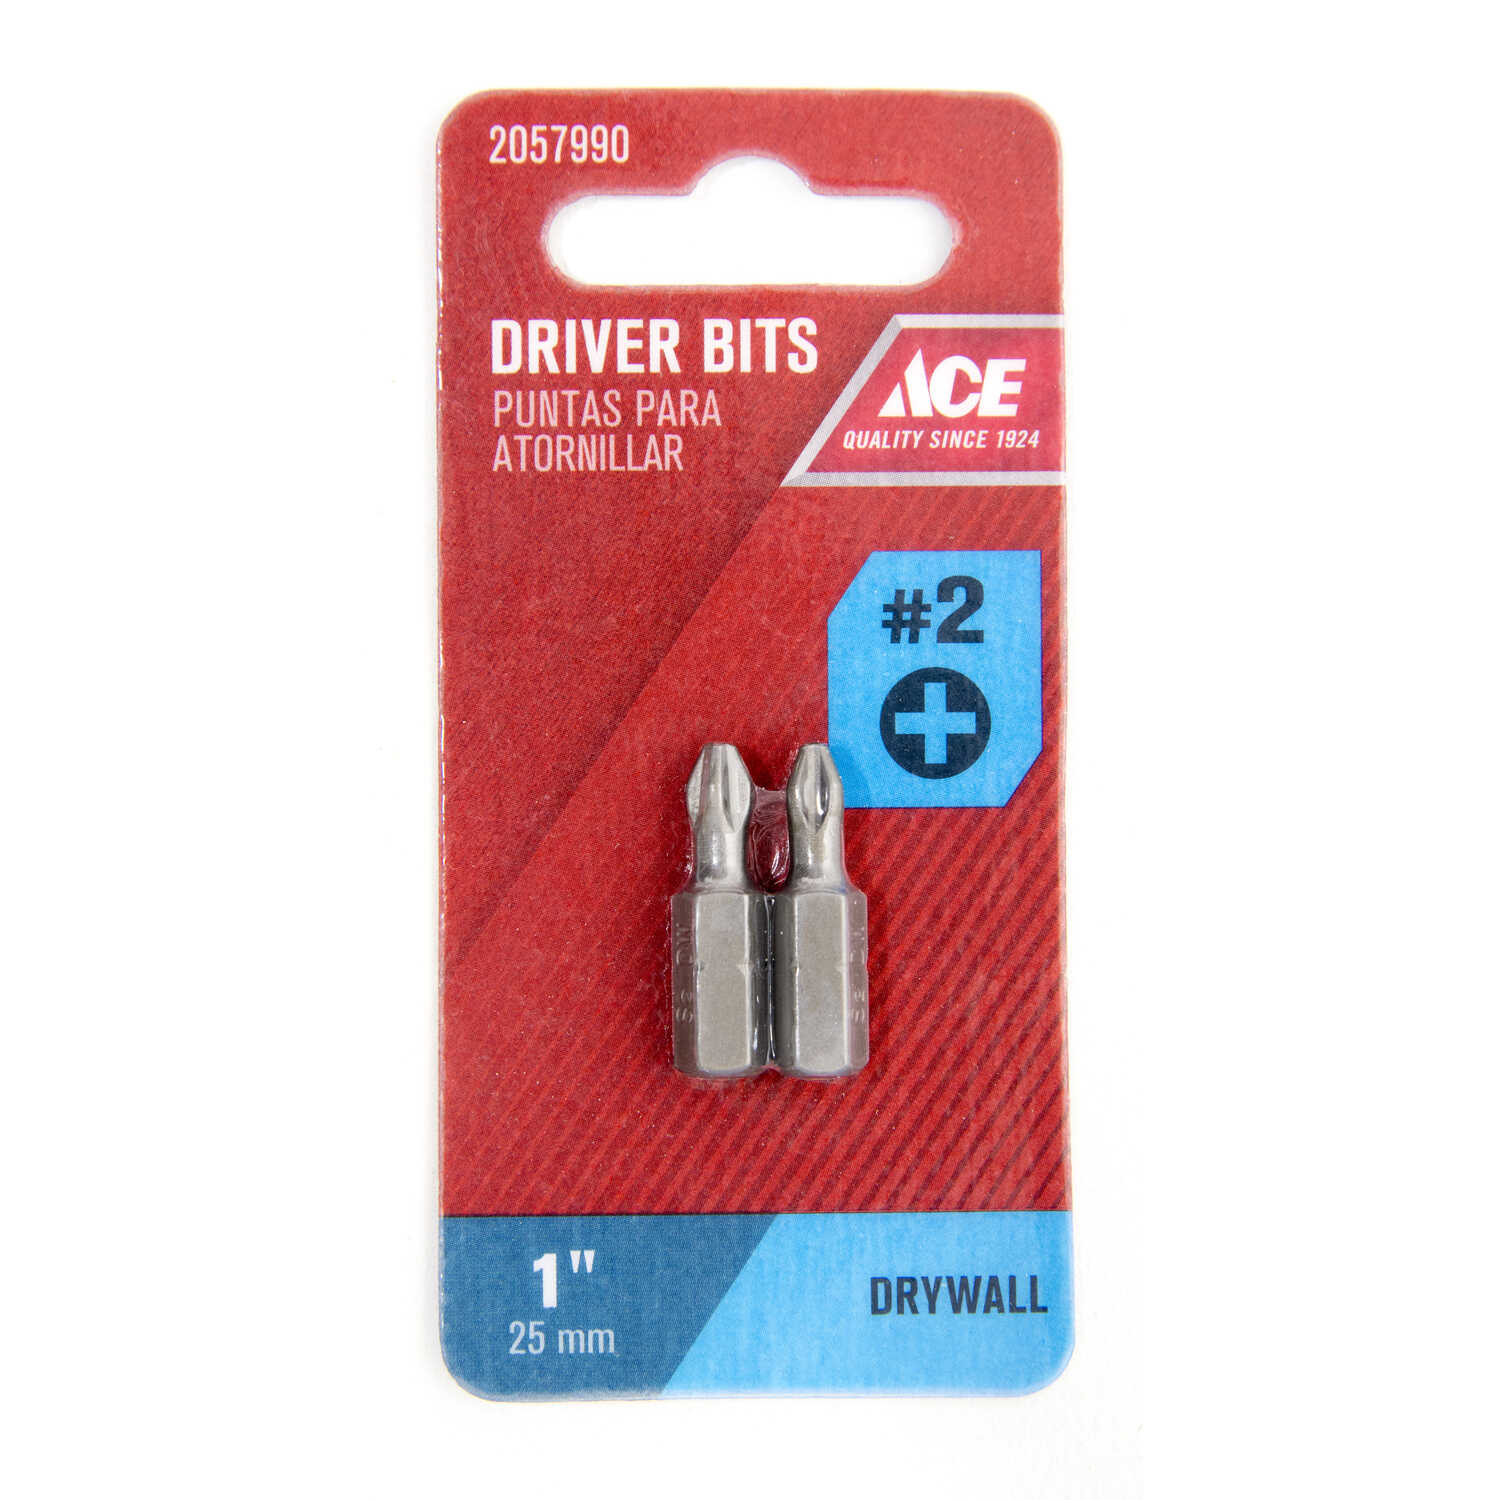 Ace  Phillips  1 in. L x 2   Drywall Insert Bit  S2 Tool Steel  Hex Shank  2 pc. 1/4 in.